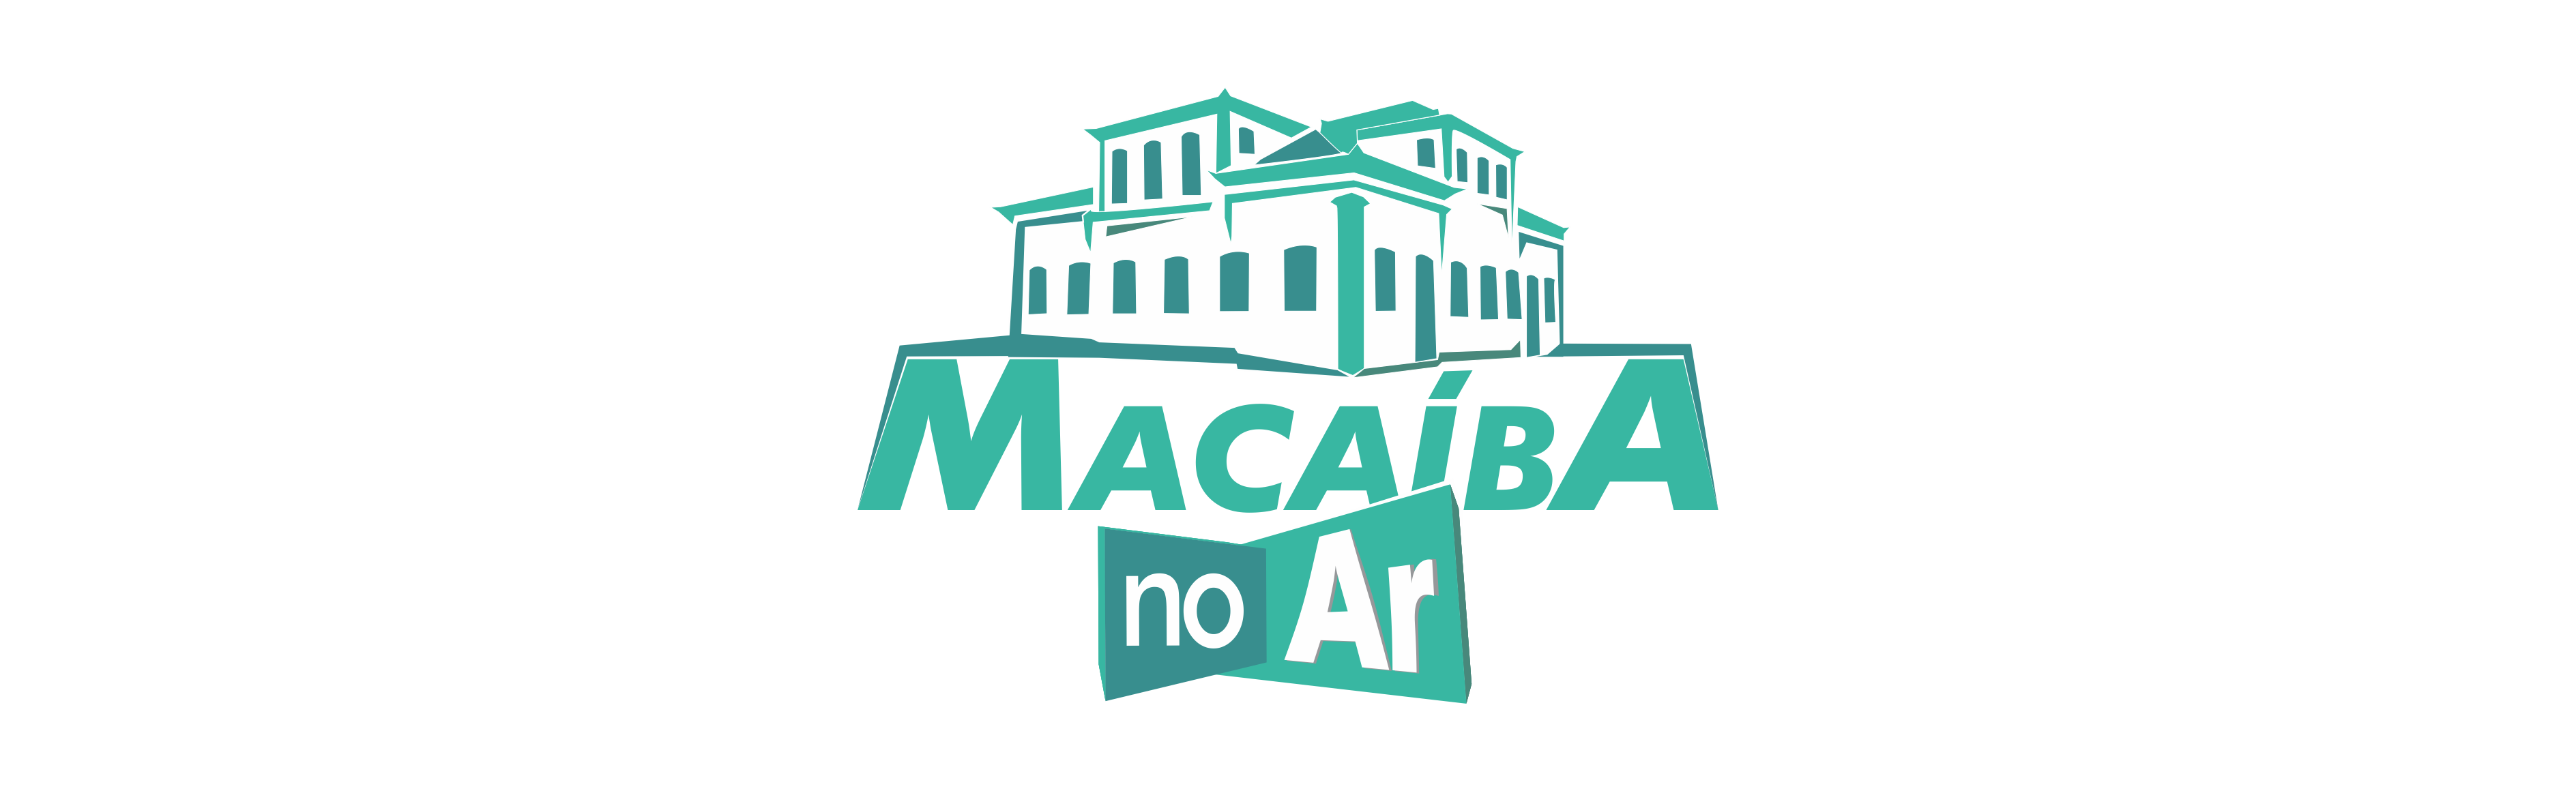 Macaí­ba no Ar